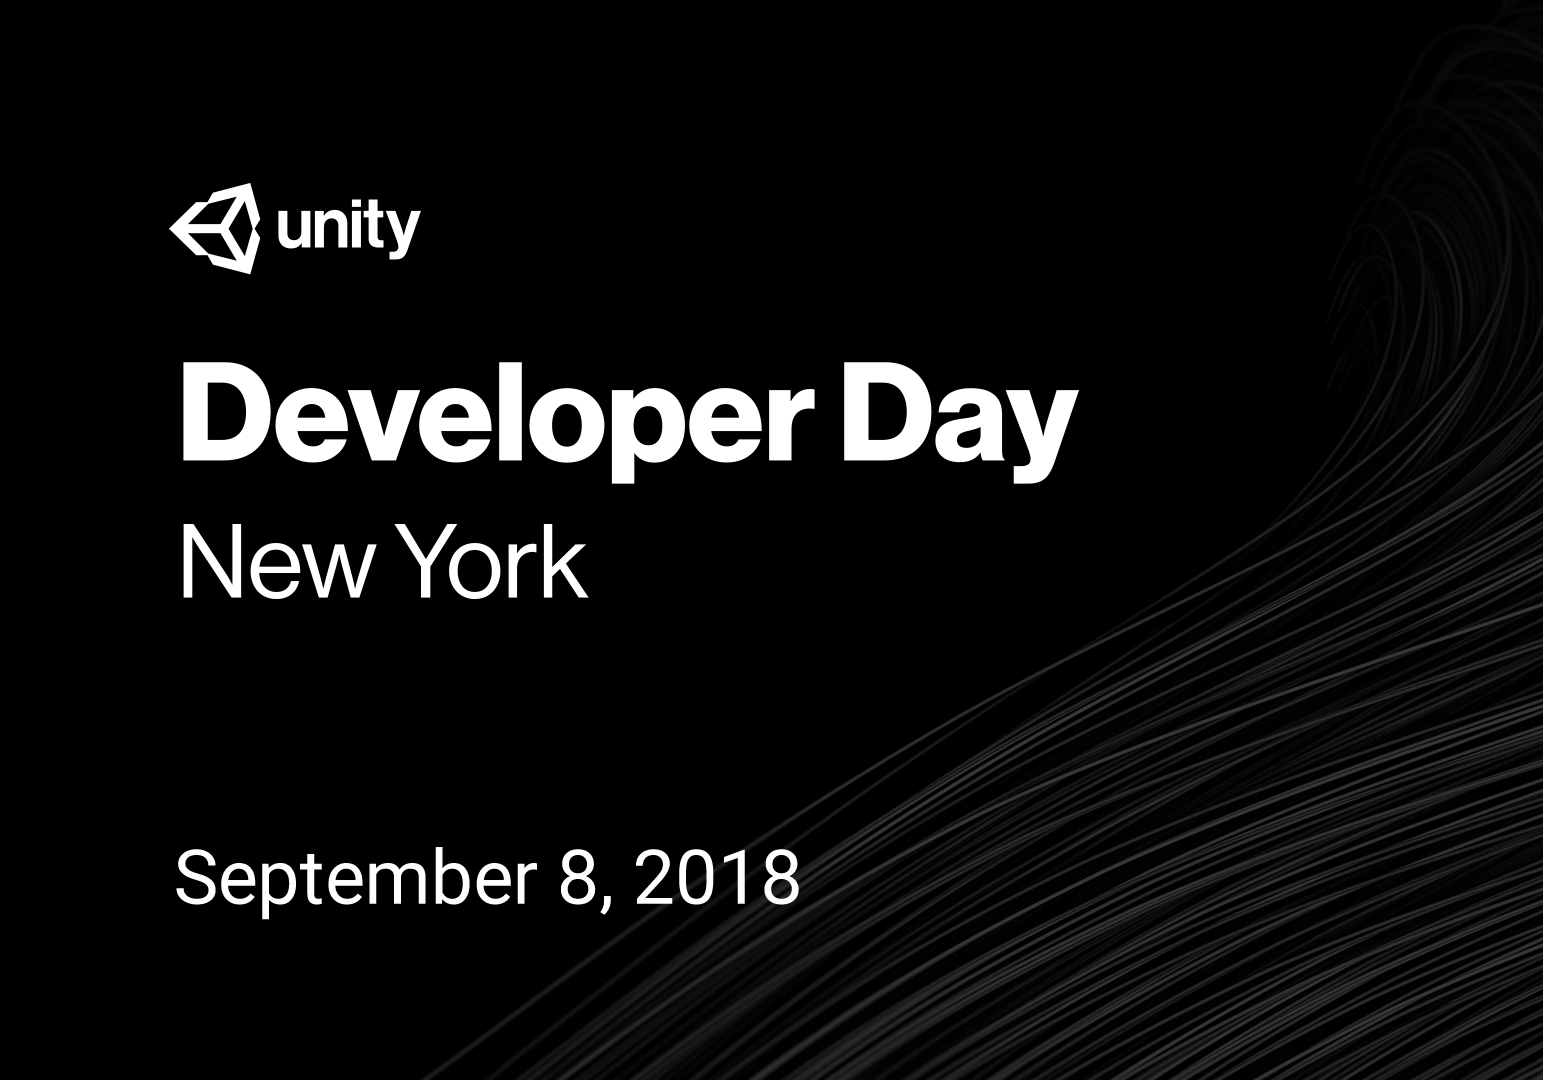 Unity Developer Day: New York 2018